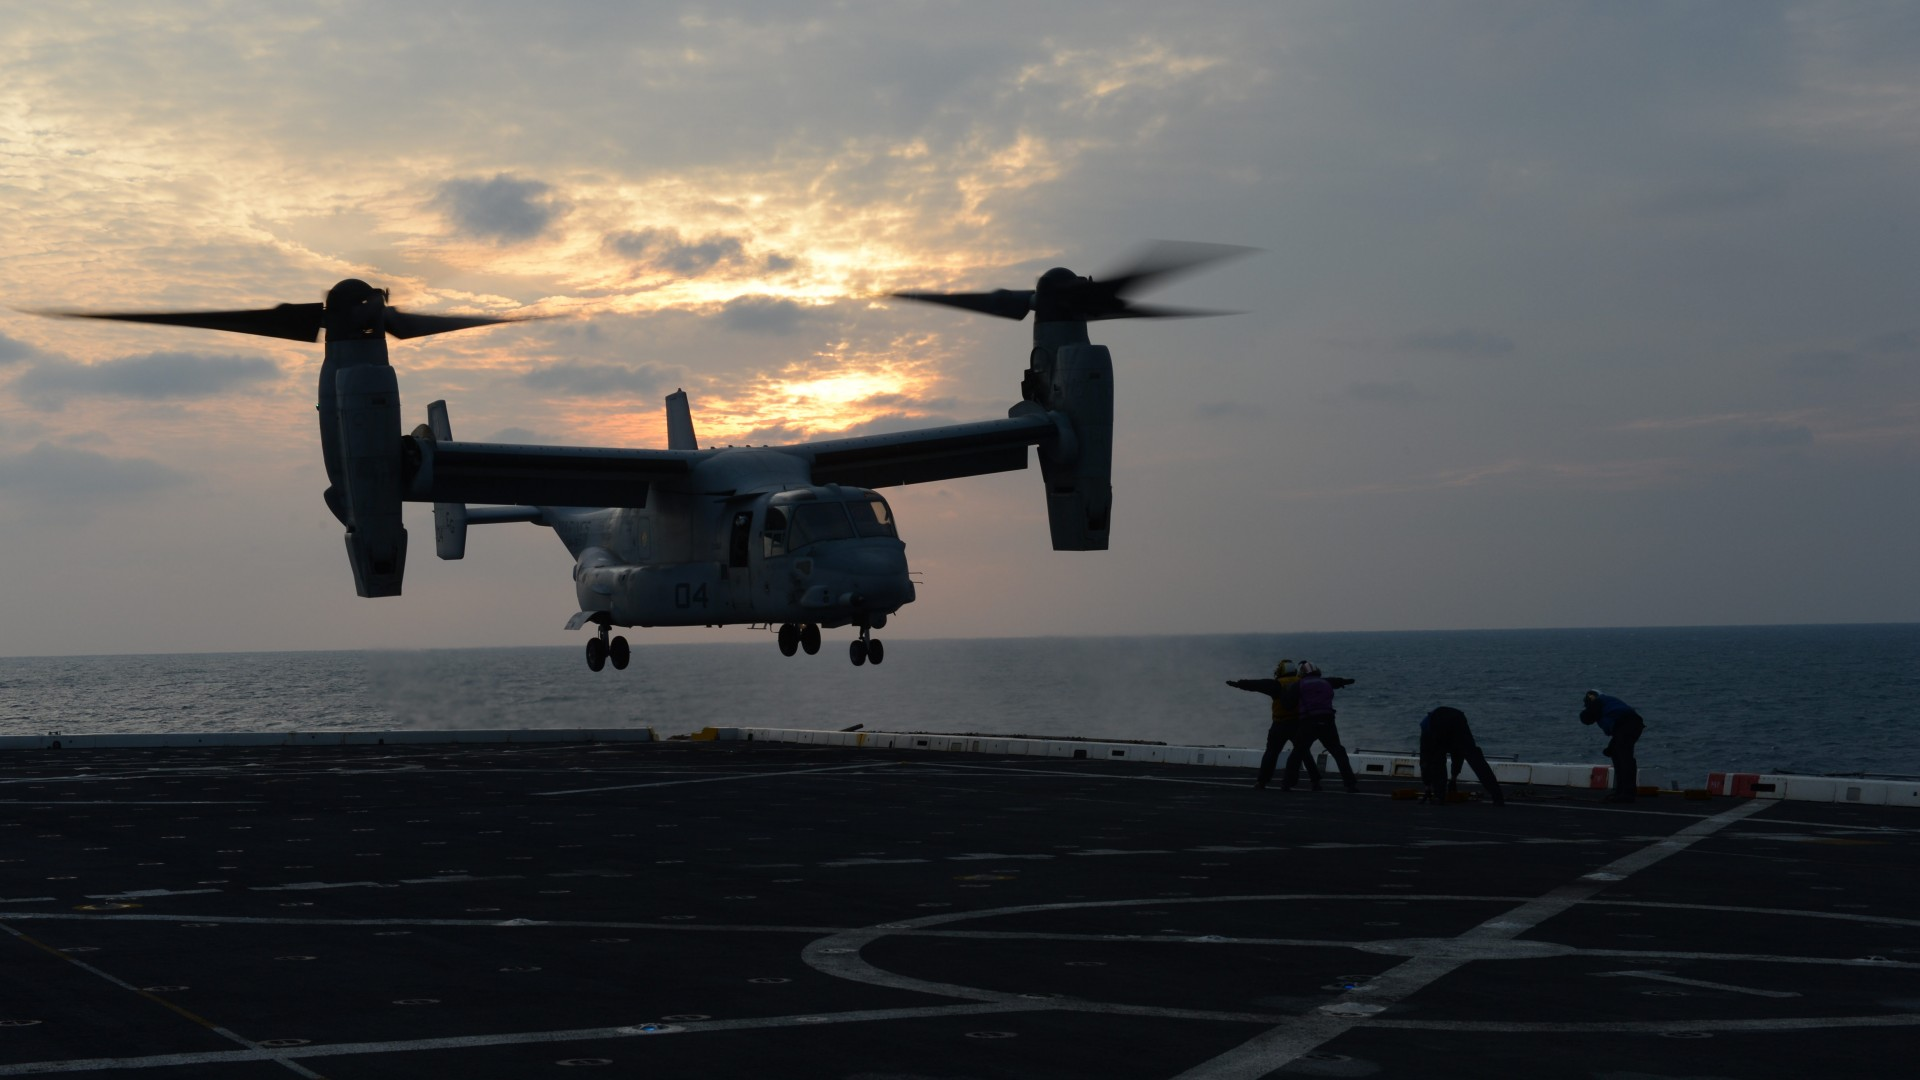 V-22 Osprey, tiltrotor, multi-mission aircraft, Bell, Boeing, U.S. Air Force, aircraft carrier, U.S. Air Force (horizontal)